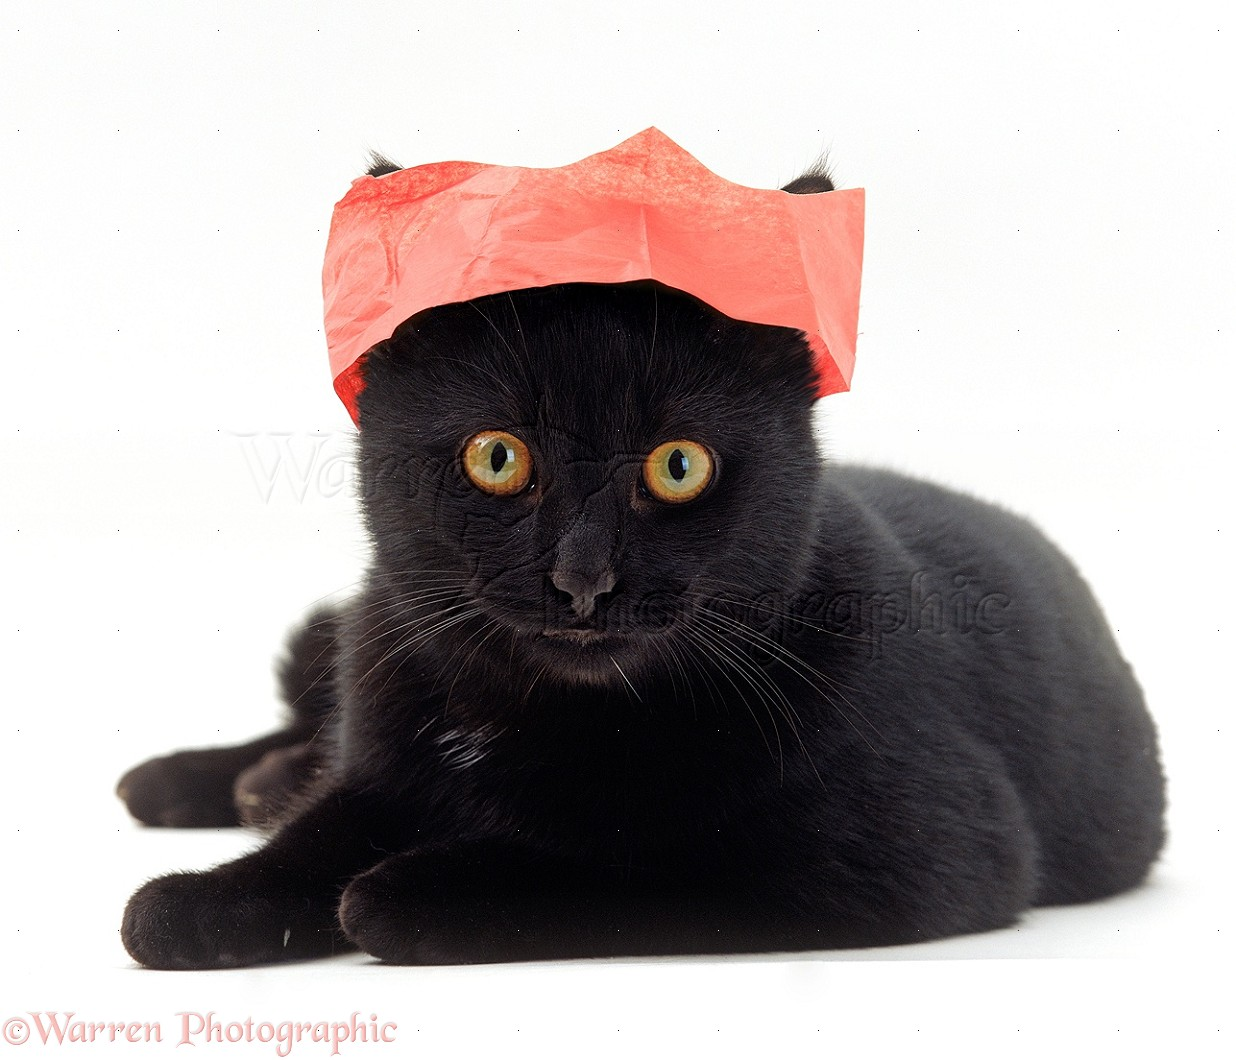 Black cat in a Christmas cracker hat photo WP18225